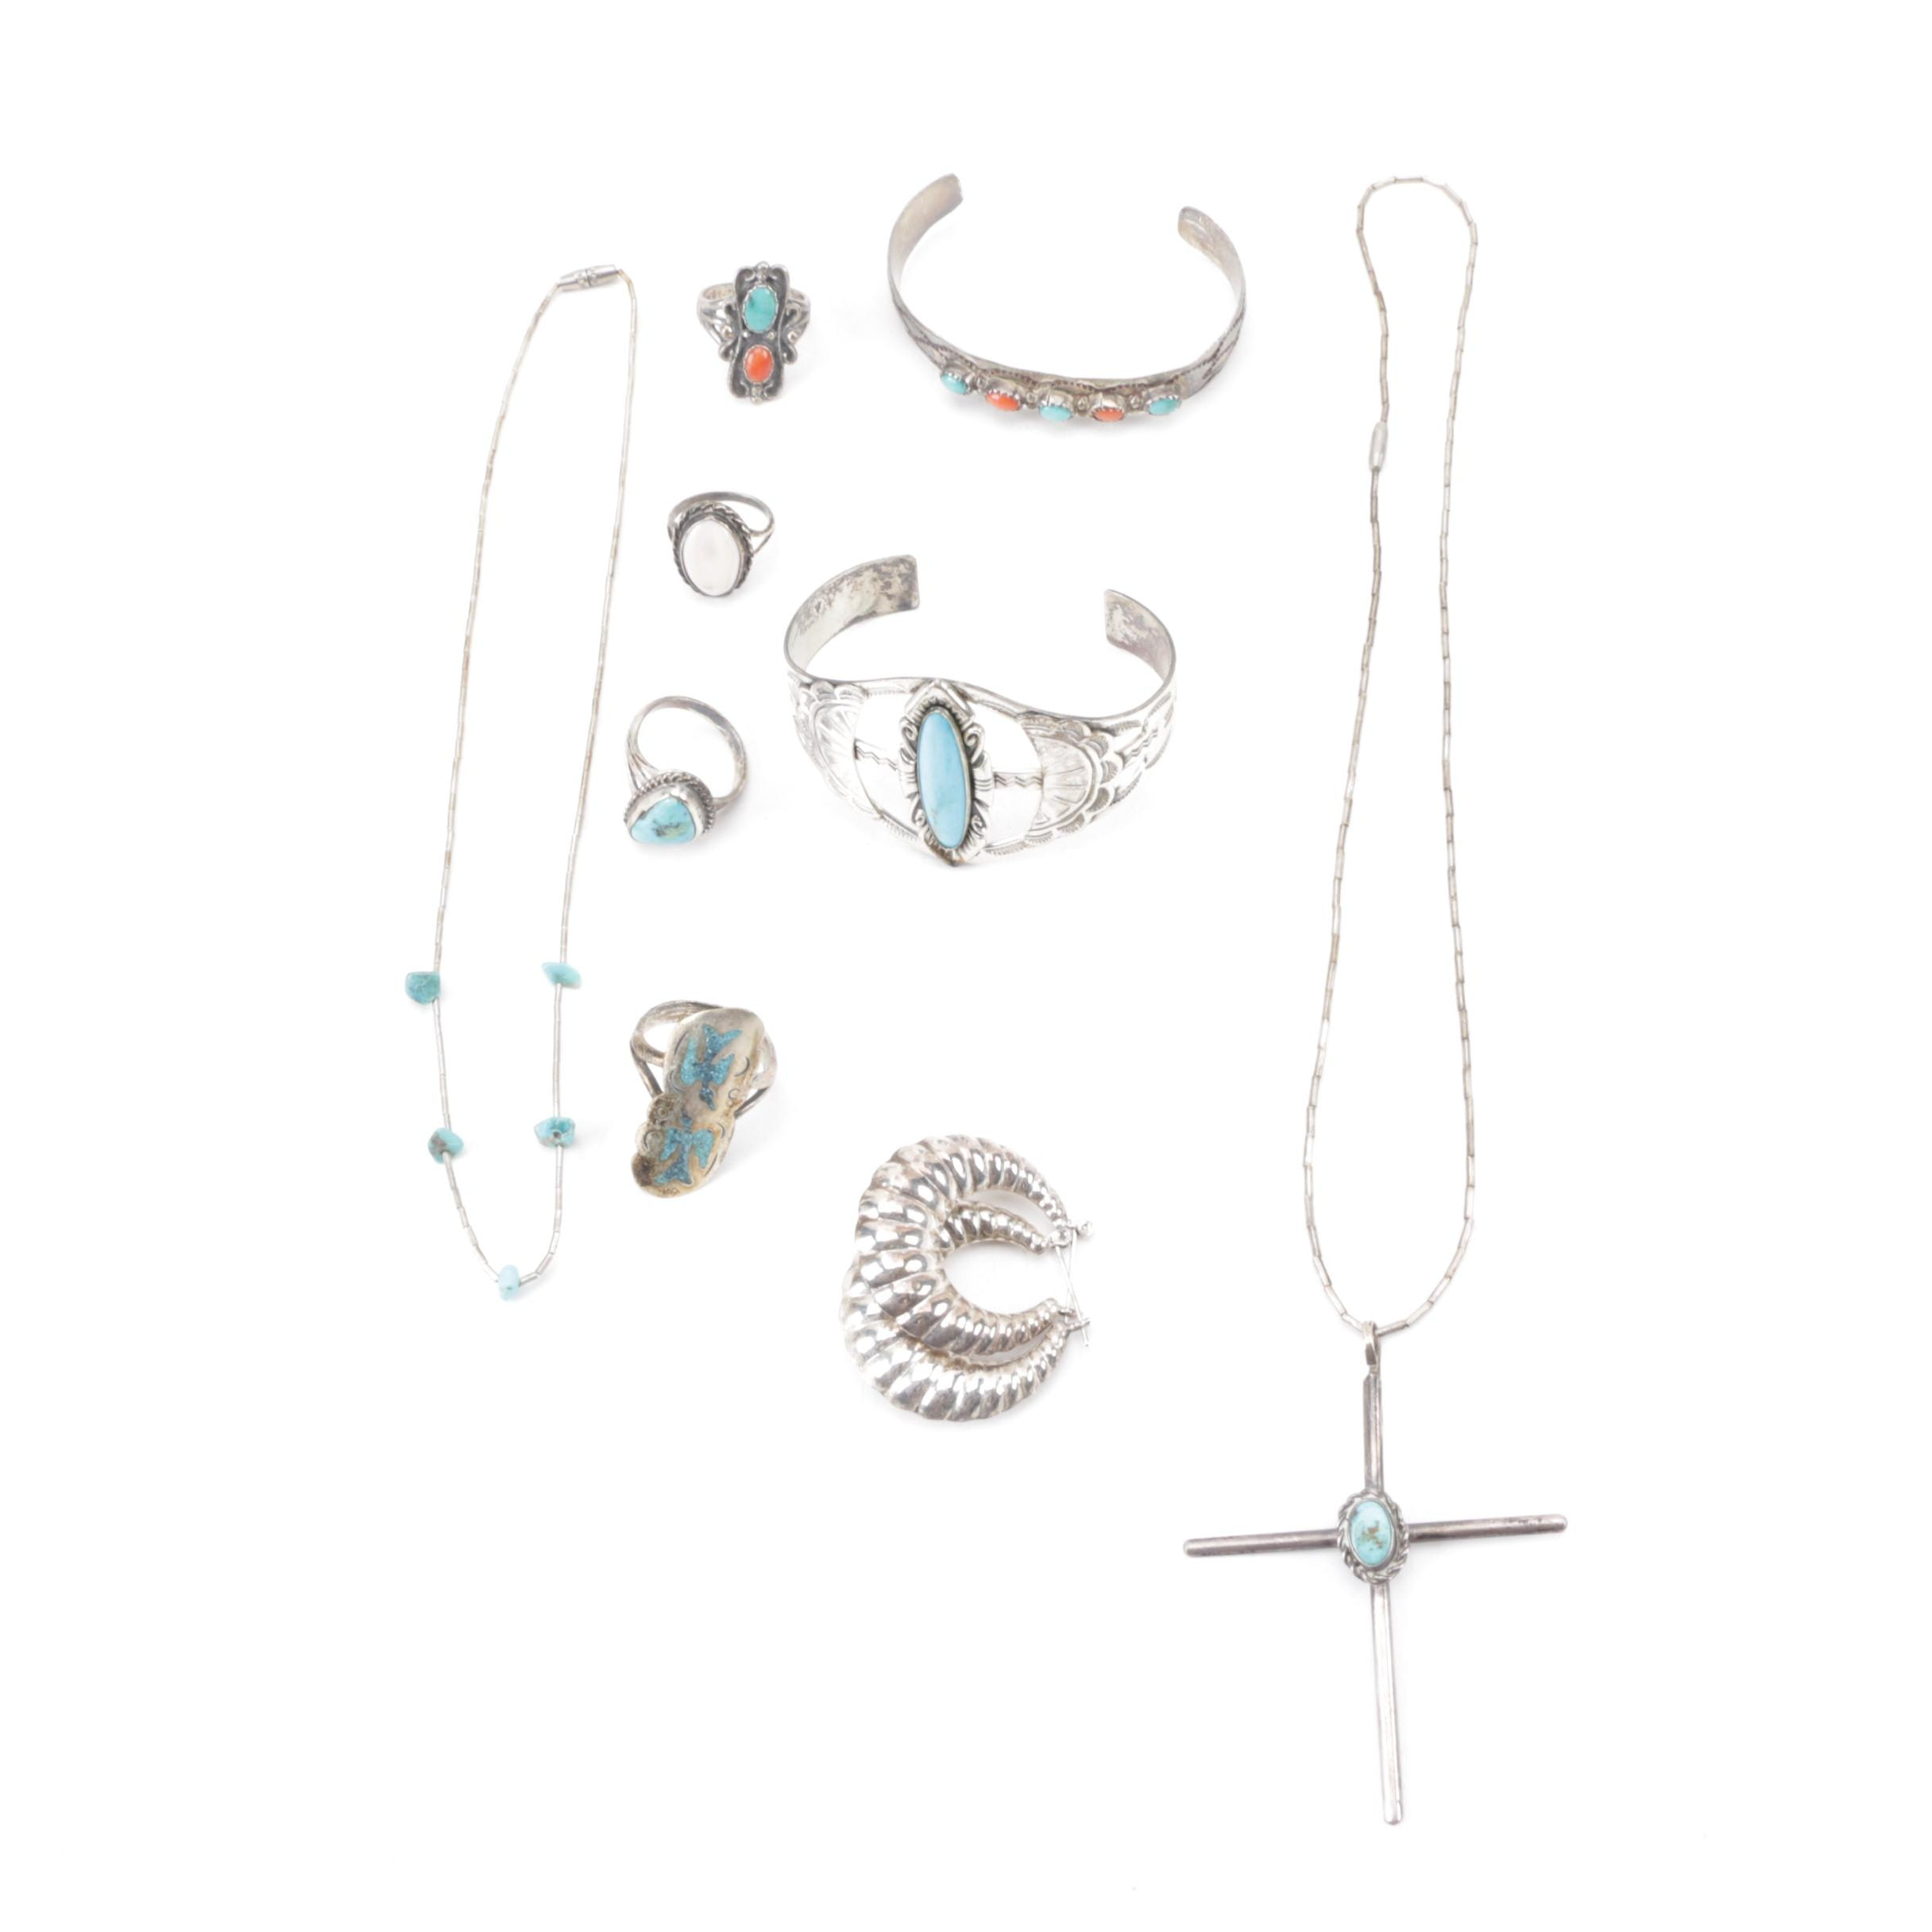 Assortment of Southwest Style Sterling Silver Jewelry